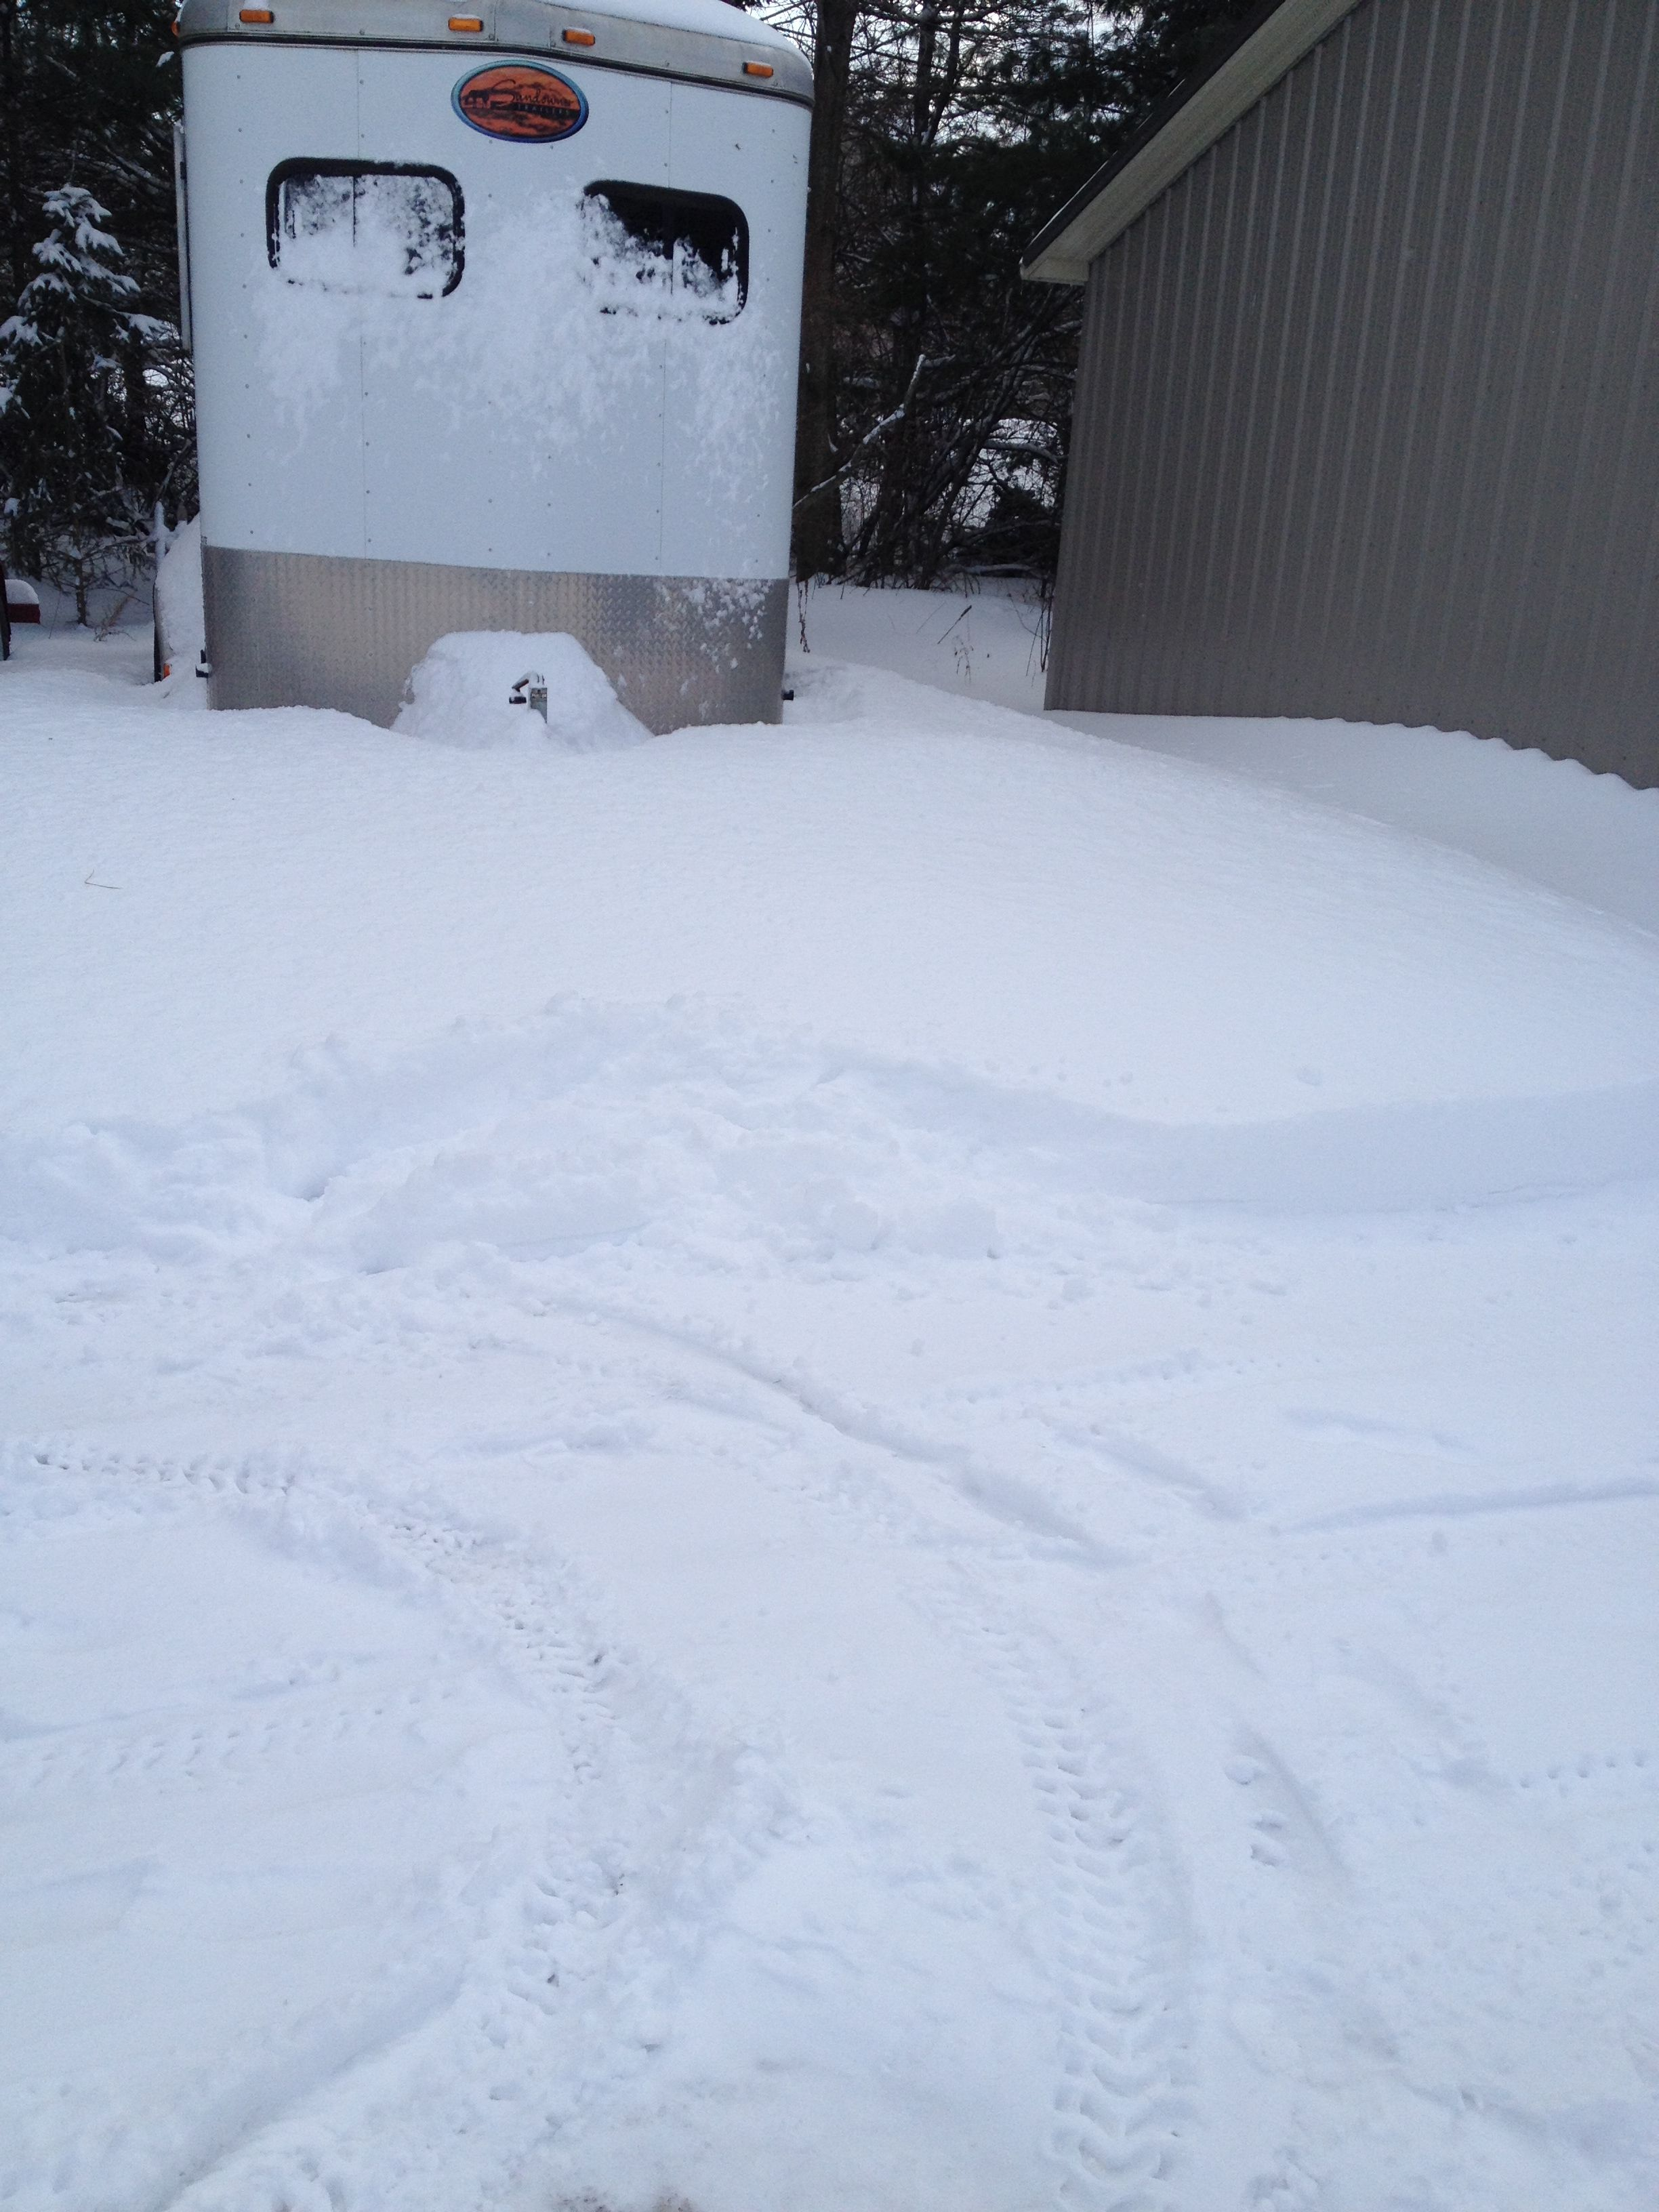 My Horse Trailer In The Snow ........... (With Images